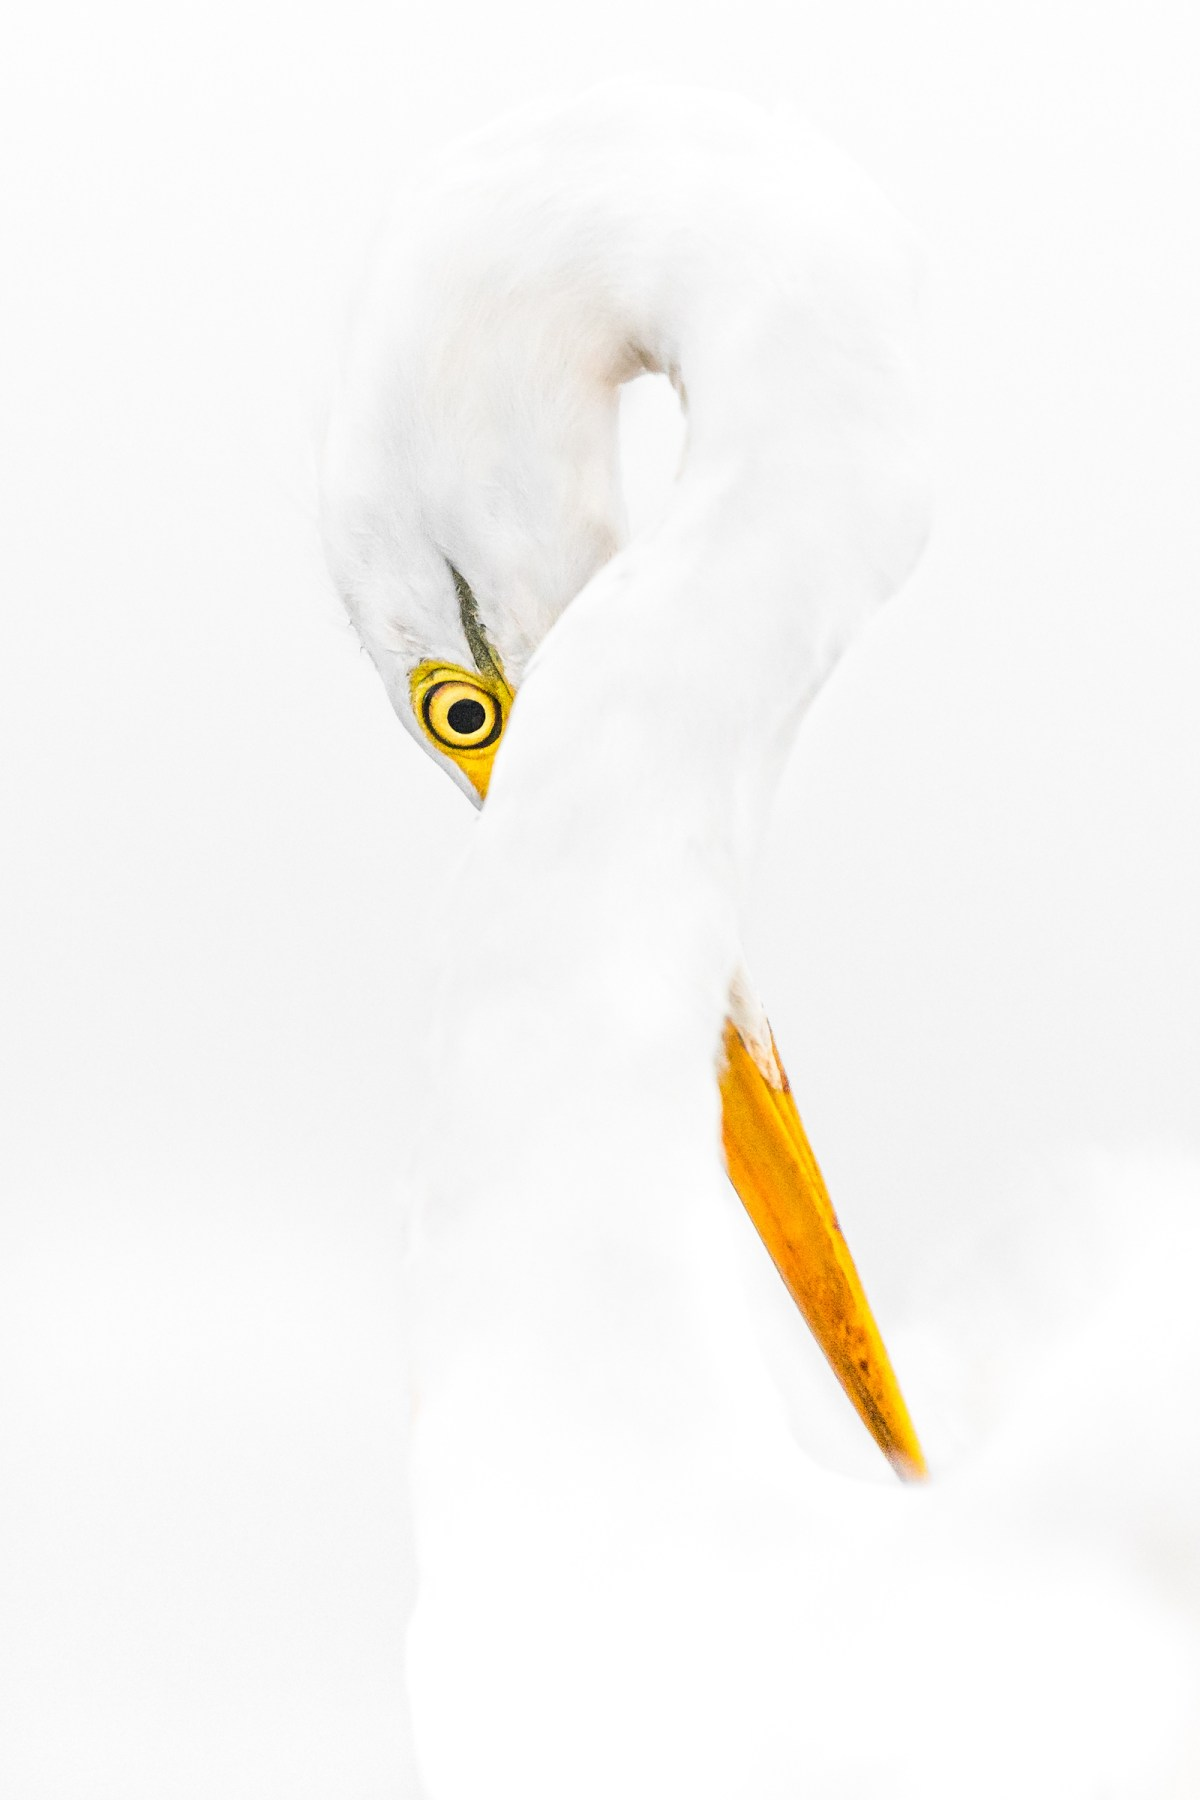 I had great fun with this Great Egret that day ,, he was posing like a pro model! so i waited for him to do something interesting , and surprisingly he did .. his body and the beginning of his neck is now a guide line for his eye .. he stayed like that for exactly 4 seconds only! one of the photos that are dear to my heart